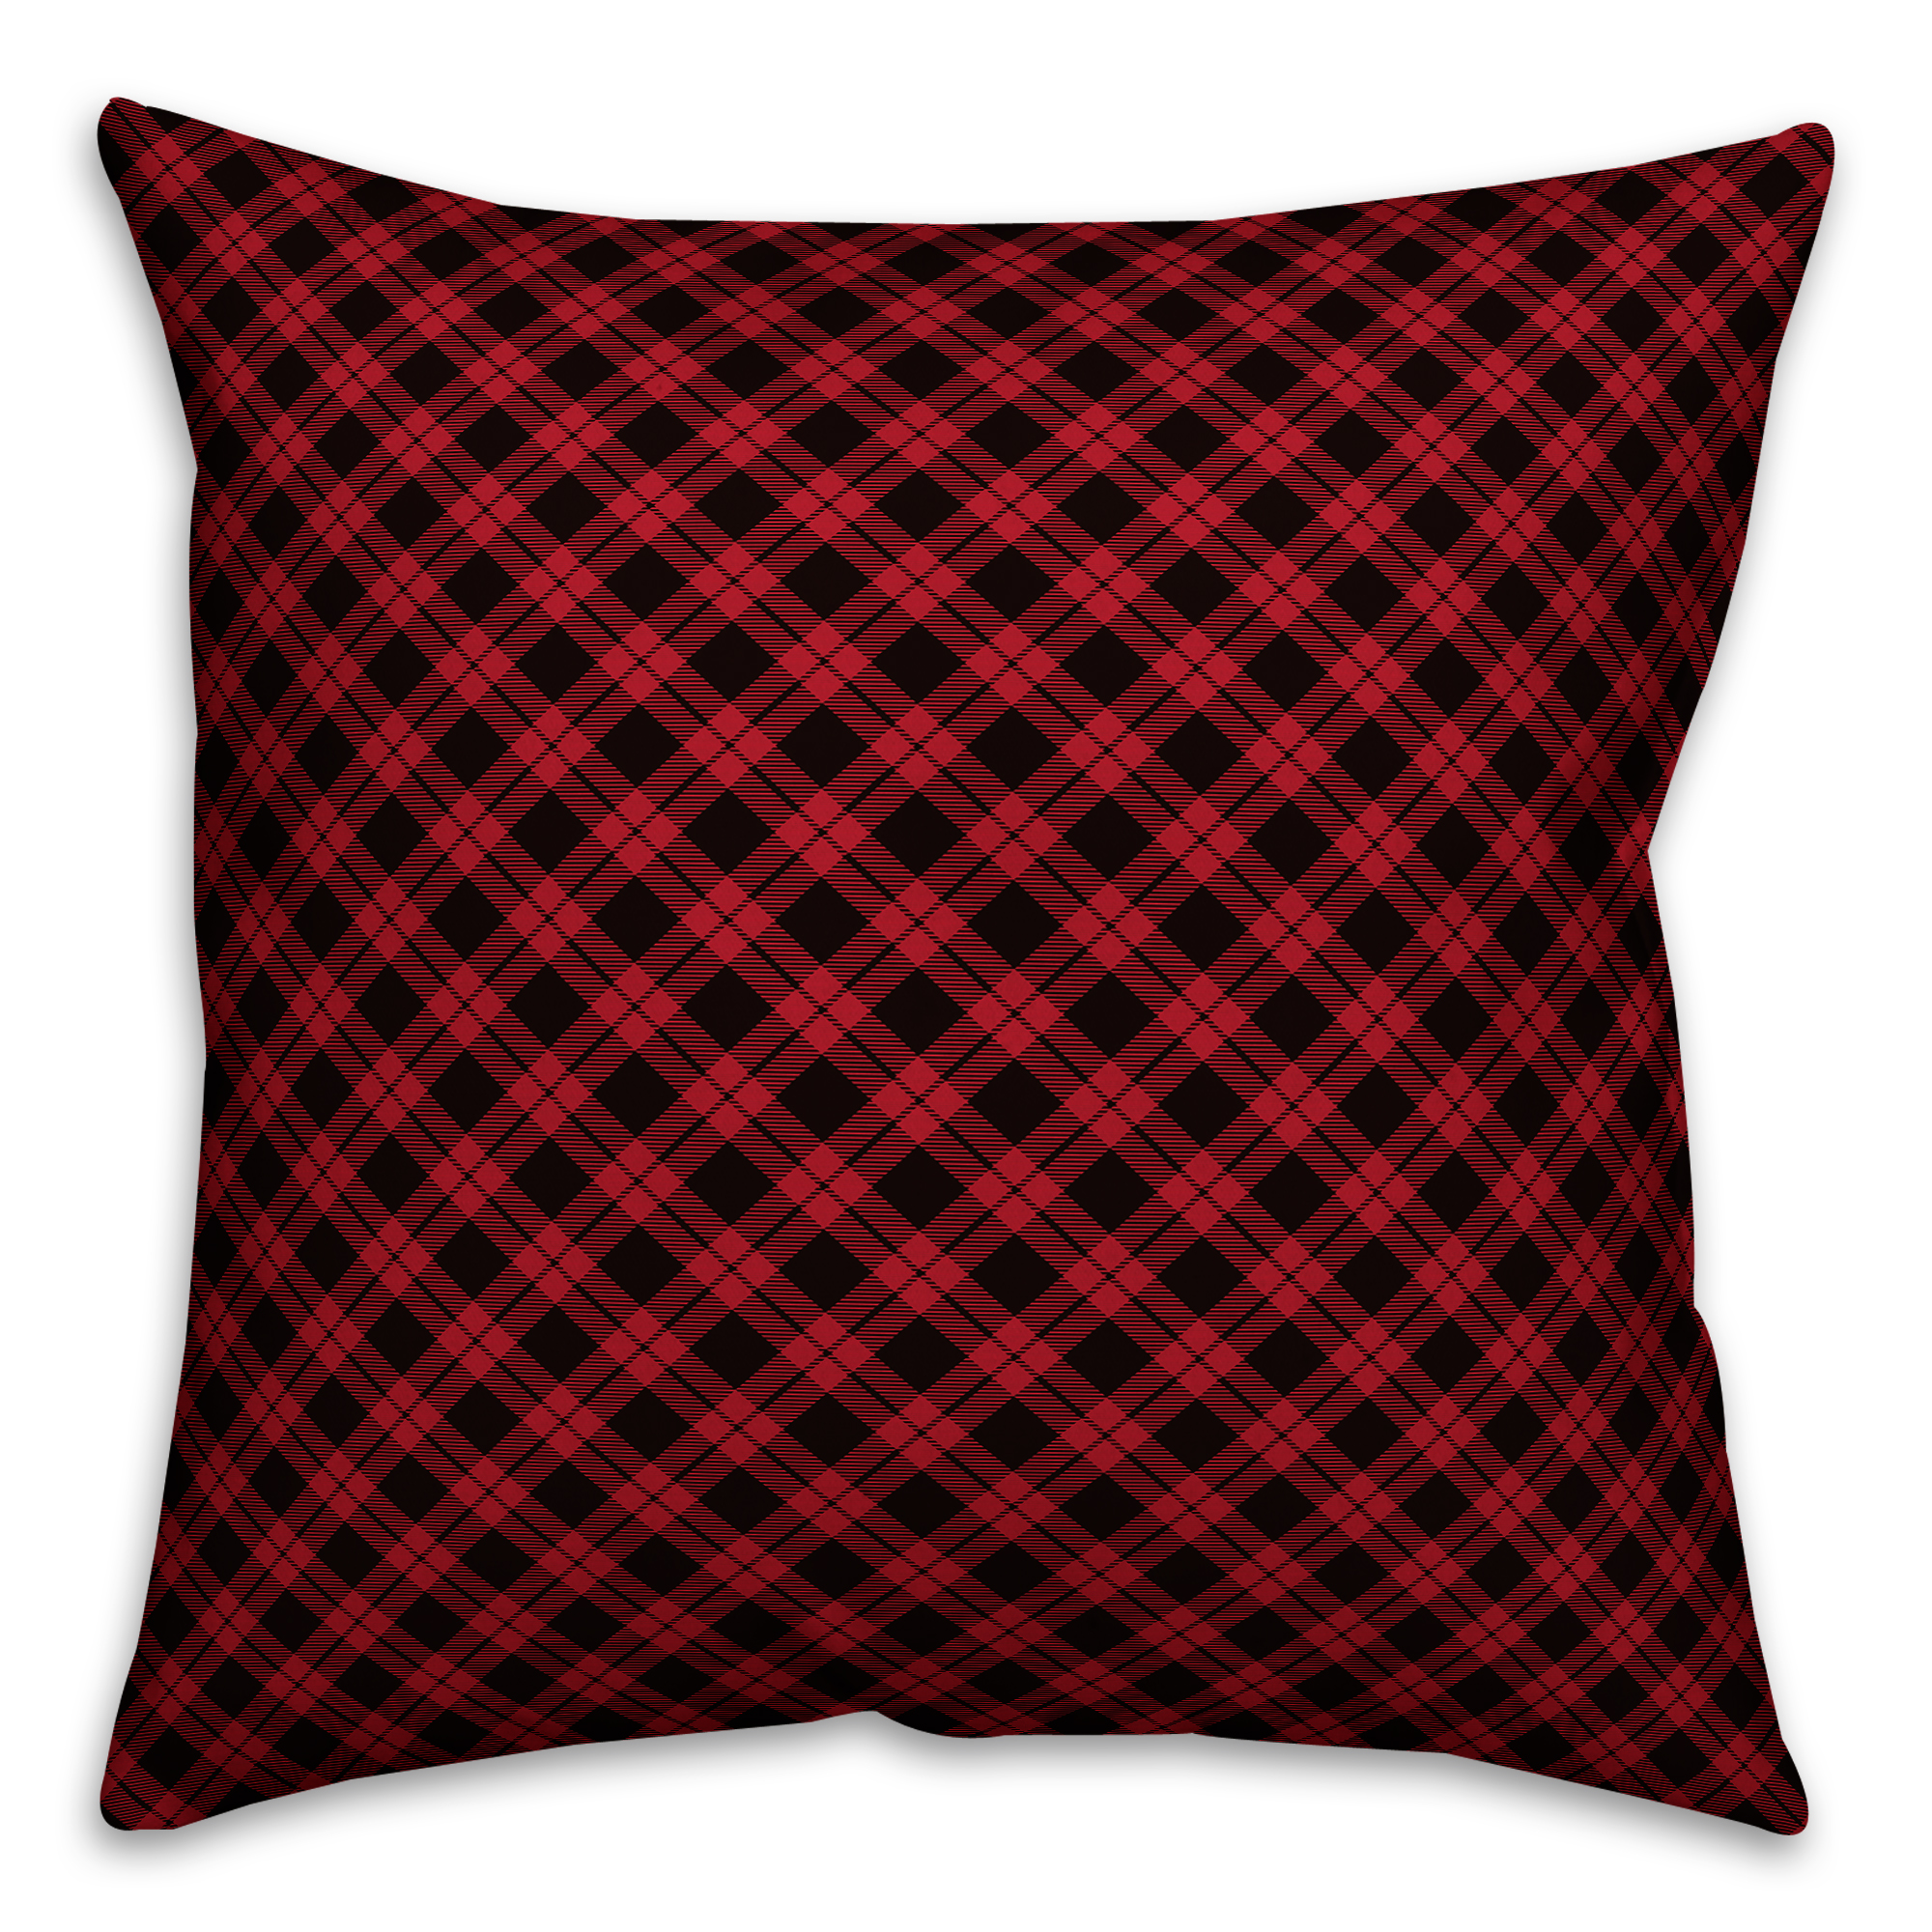 Red and Black Gingham Buffalo Check Plaid 16x16 Spun Poly Pillow